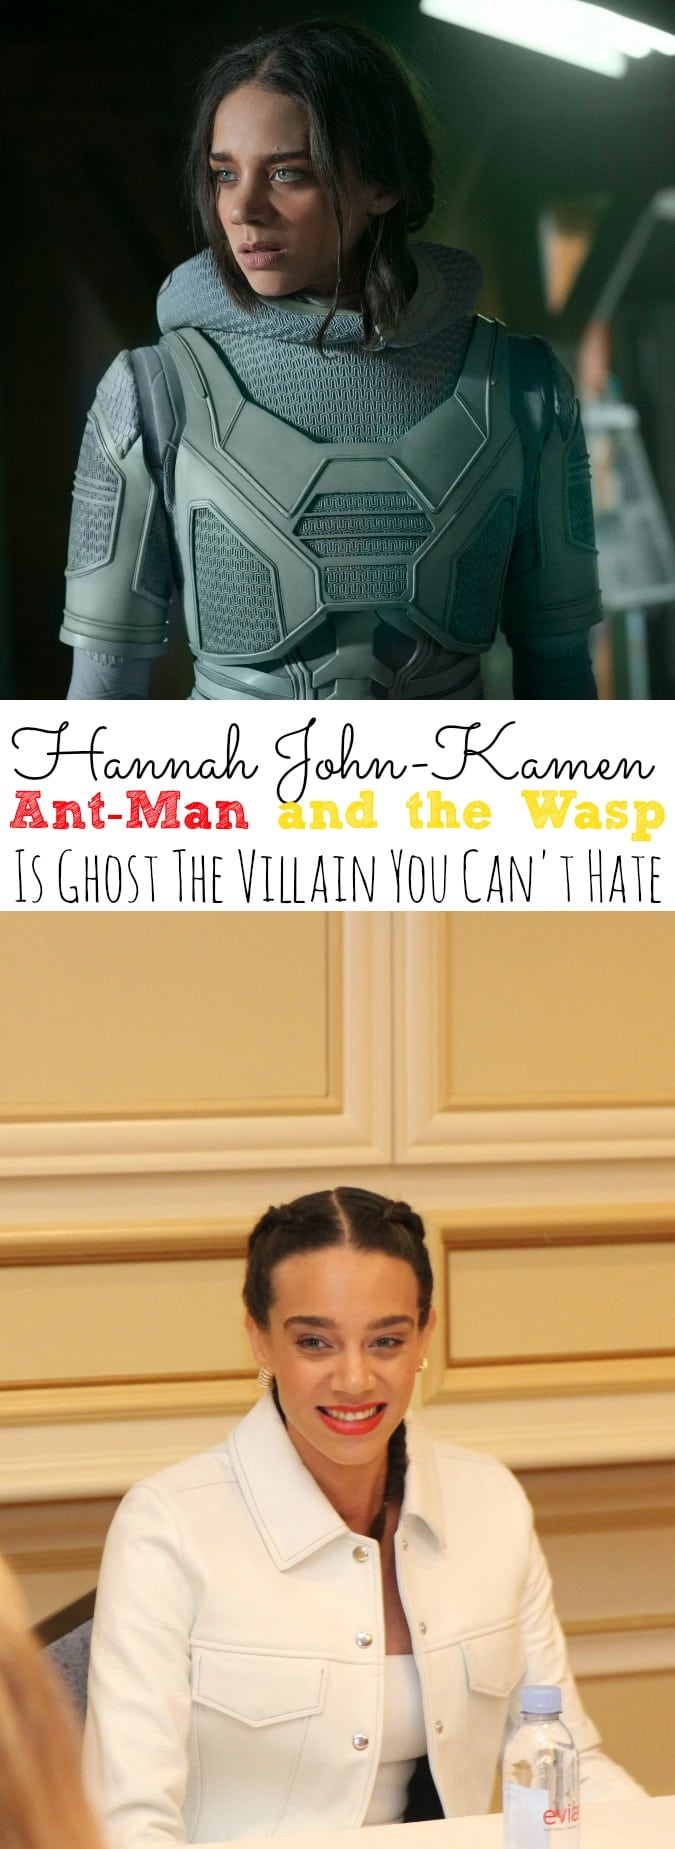 Hannah John-Kamen Interview Ant-Man and the Wasp | The Villain You Can't Hate - simplytodaylife.com